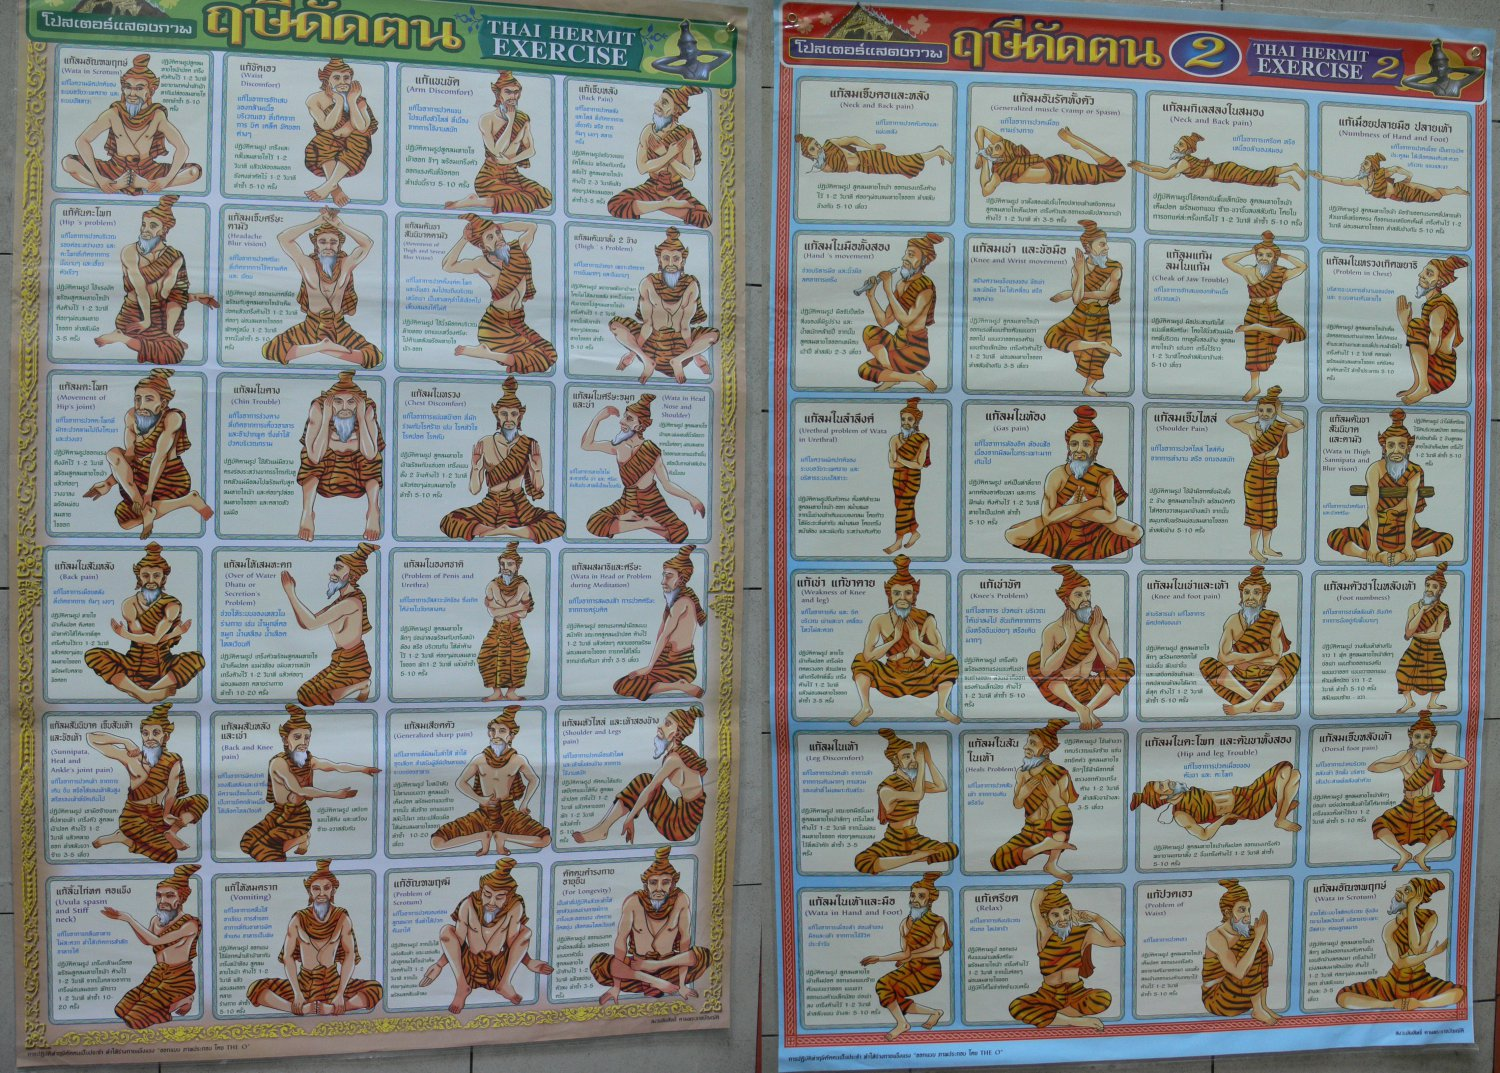 Reflexology Thai Massage Hermit Chart Foot Body Hand Face Leg Arm Back Yoga